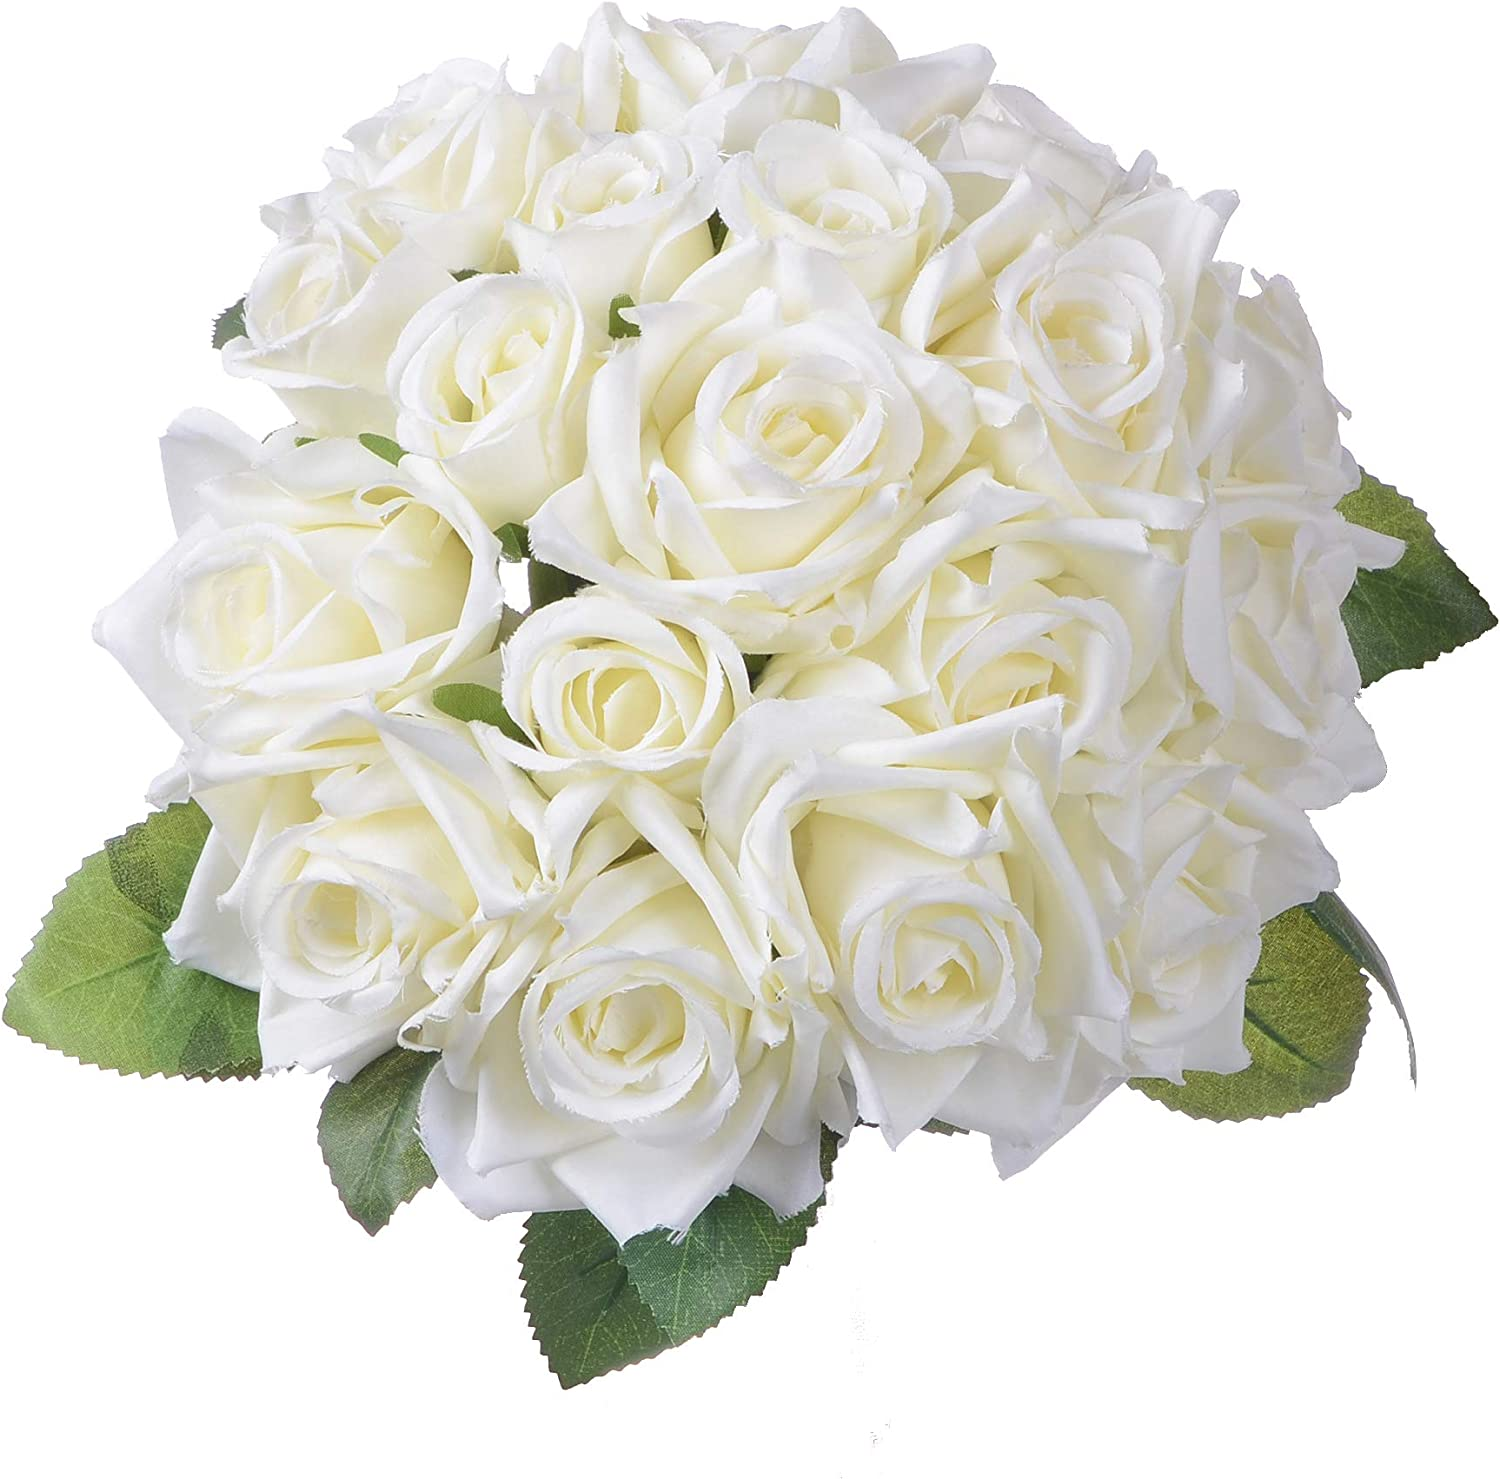 Amazon Com Artiflr Artificial Flowers Rose Bouquet 2 Pack Fake Flowers Silk Plastic Artificial White Roses 18 Heads Bridal Wedding Bouquet For Home Garden Party Wedding Decoration White Home Kitchen